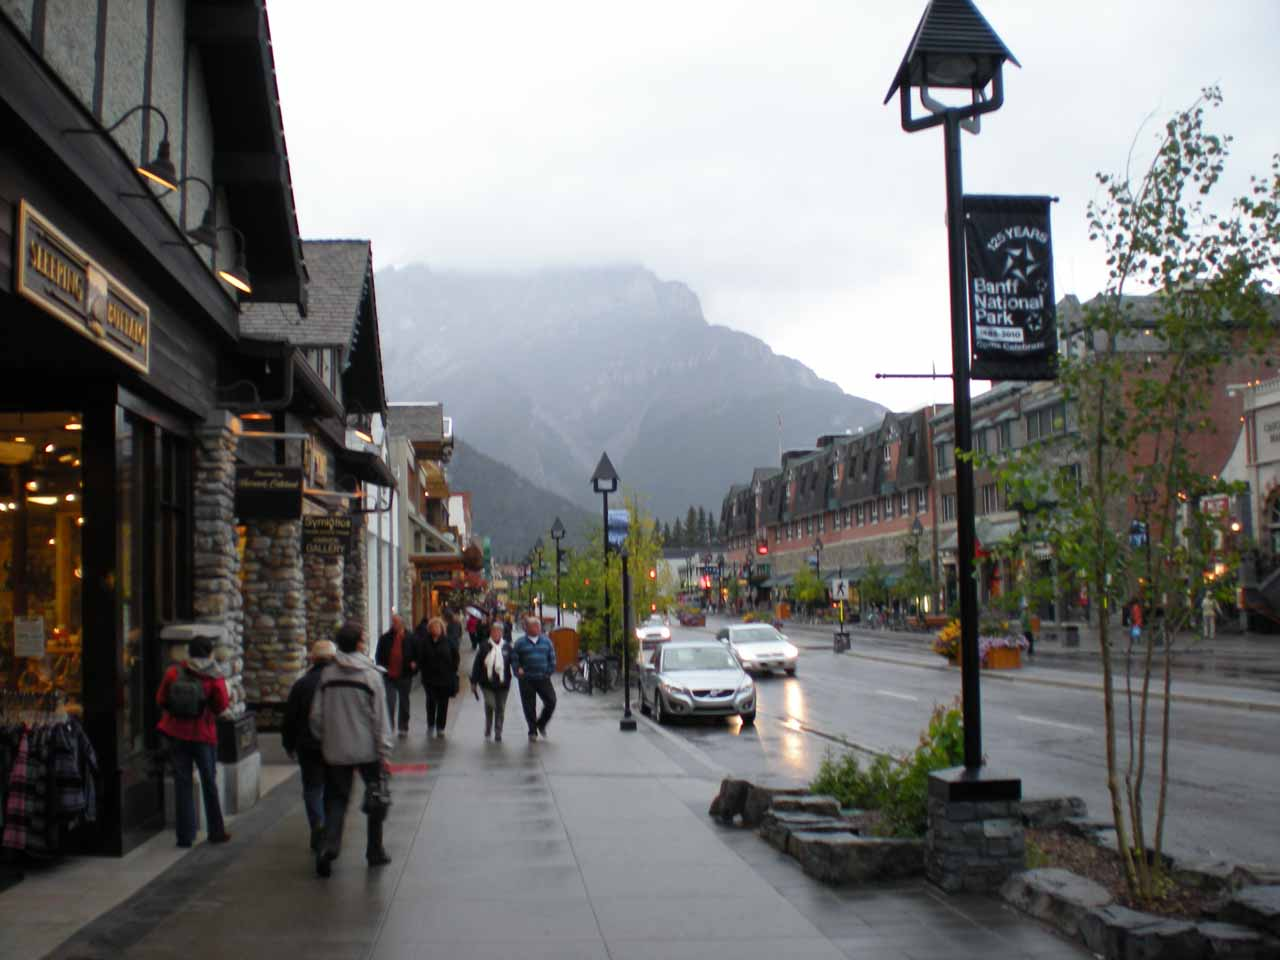 A rainy evening in Banff Town